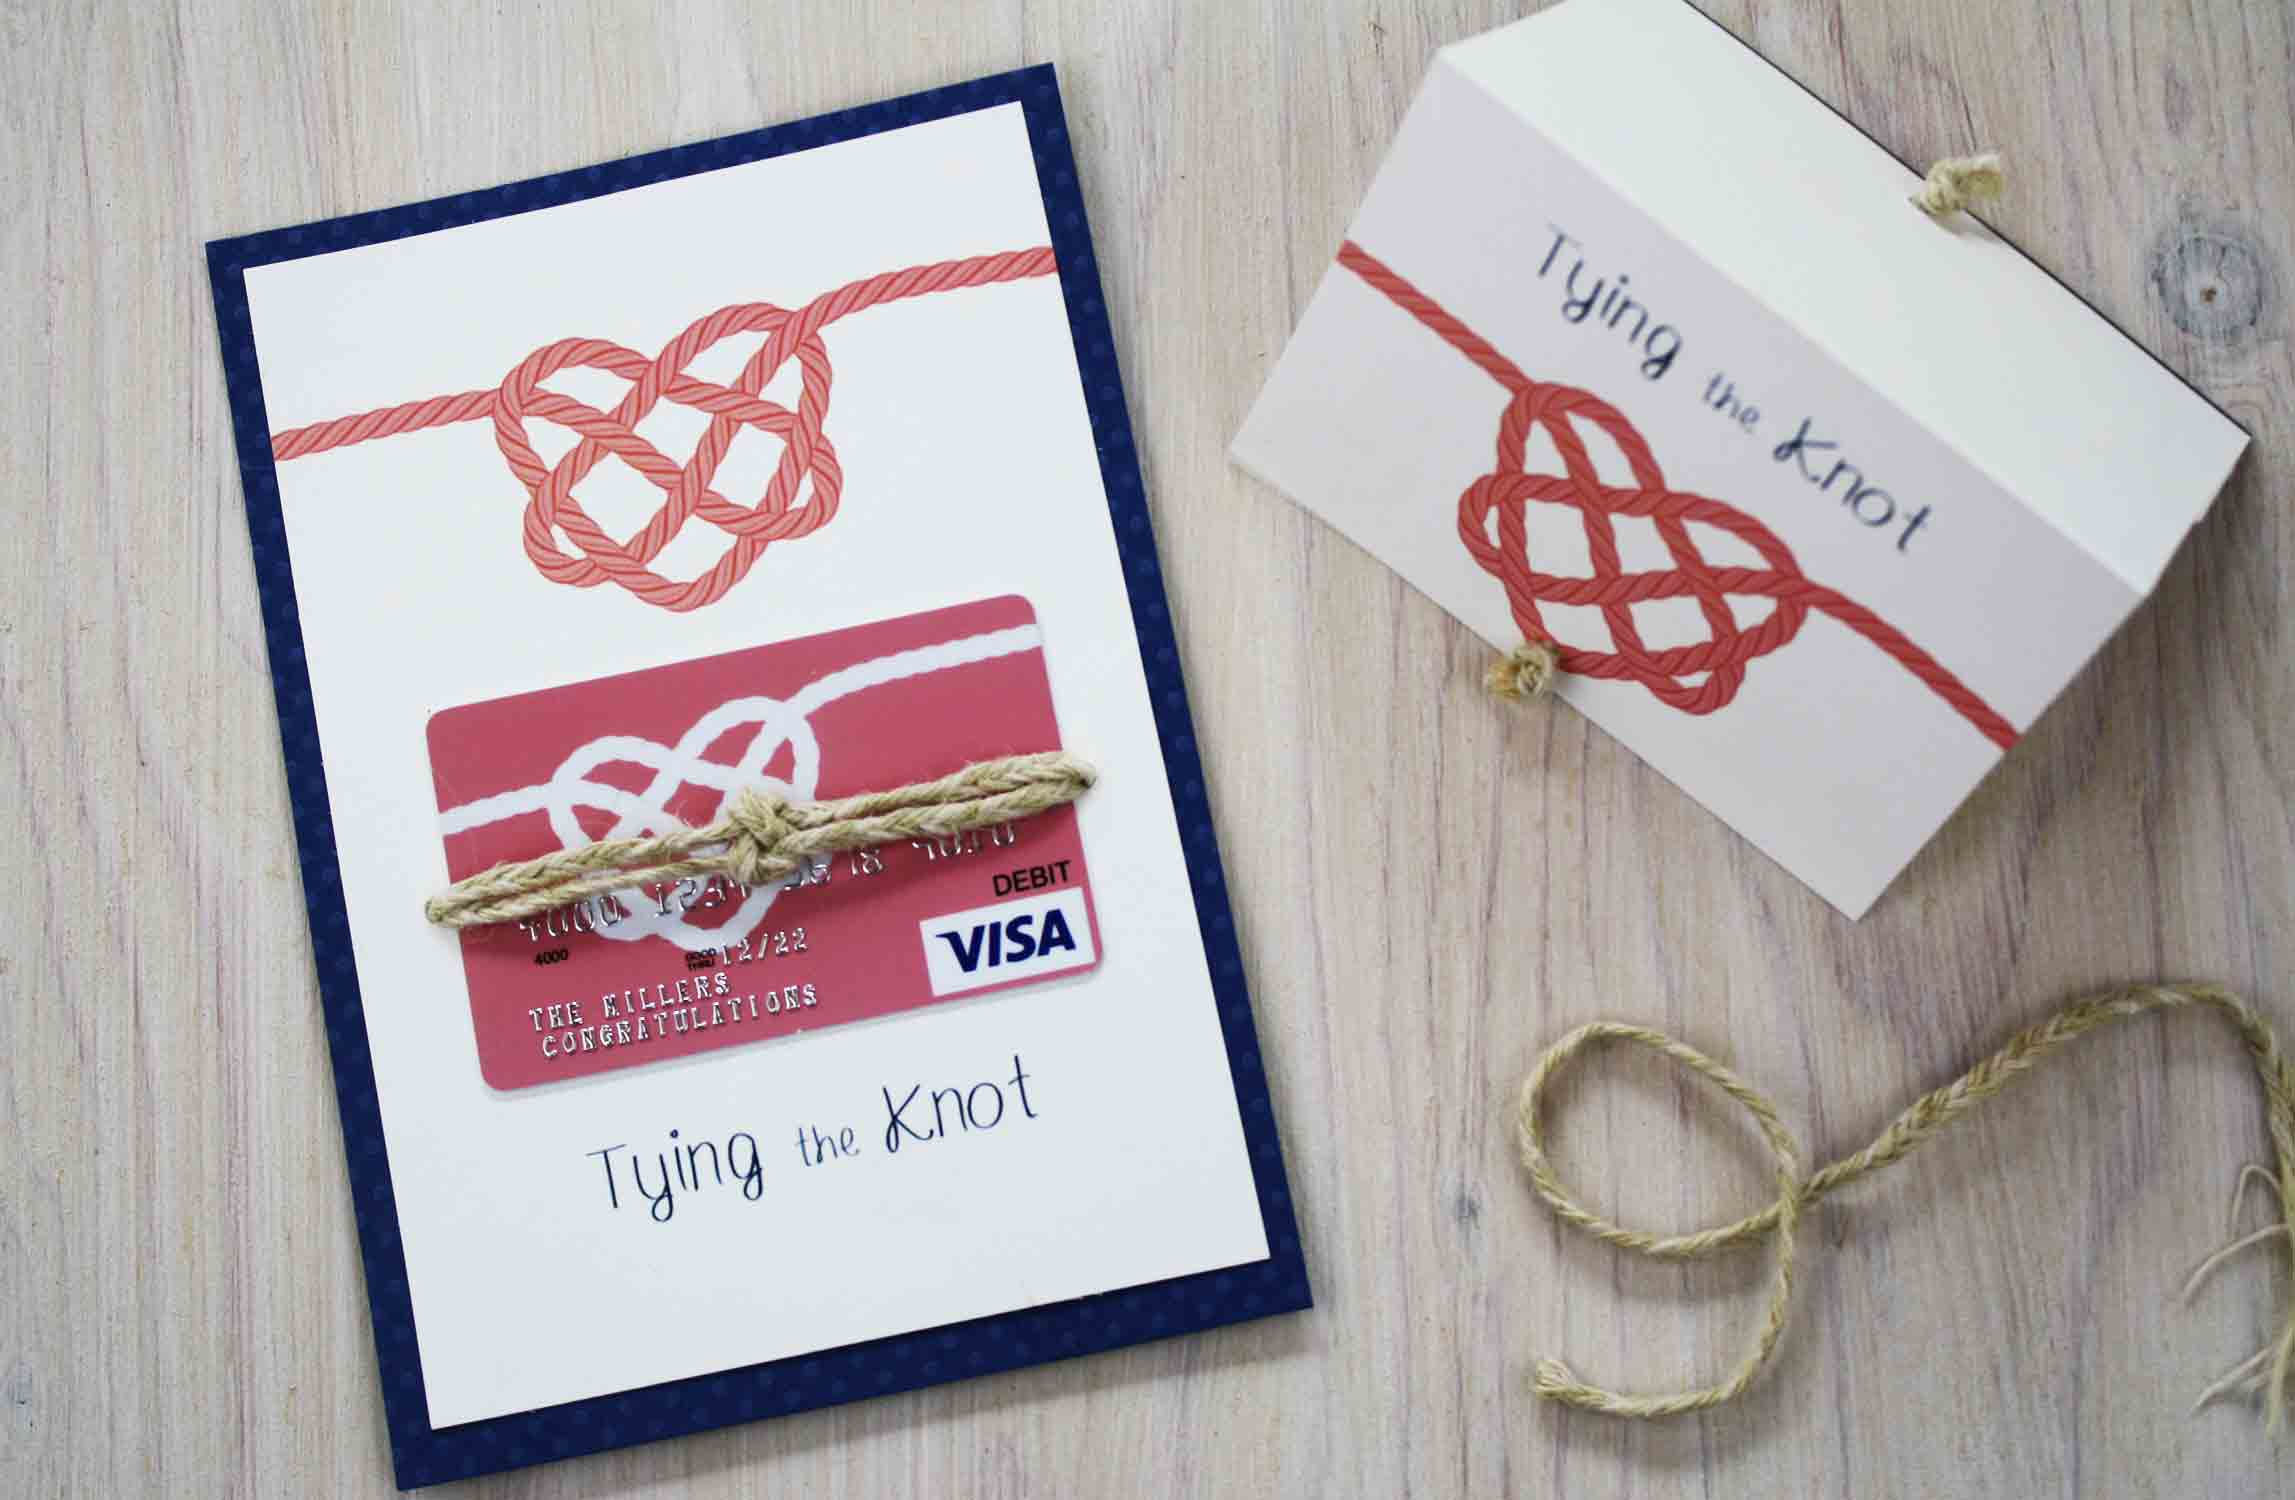 Tie the Knot Wedding gift card holder